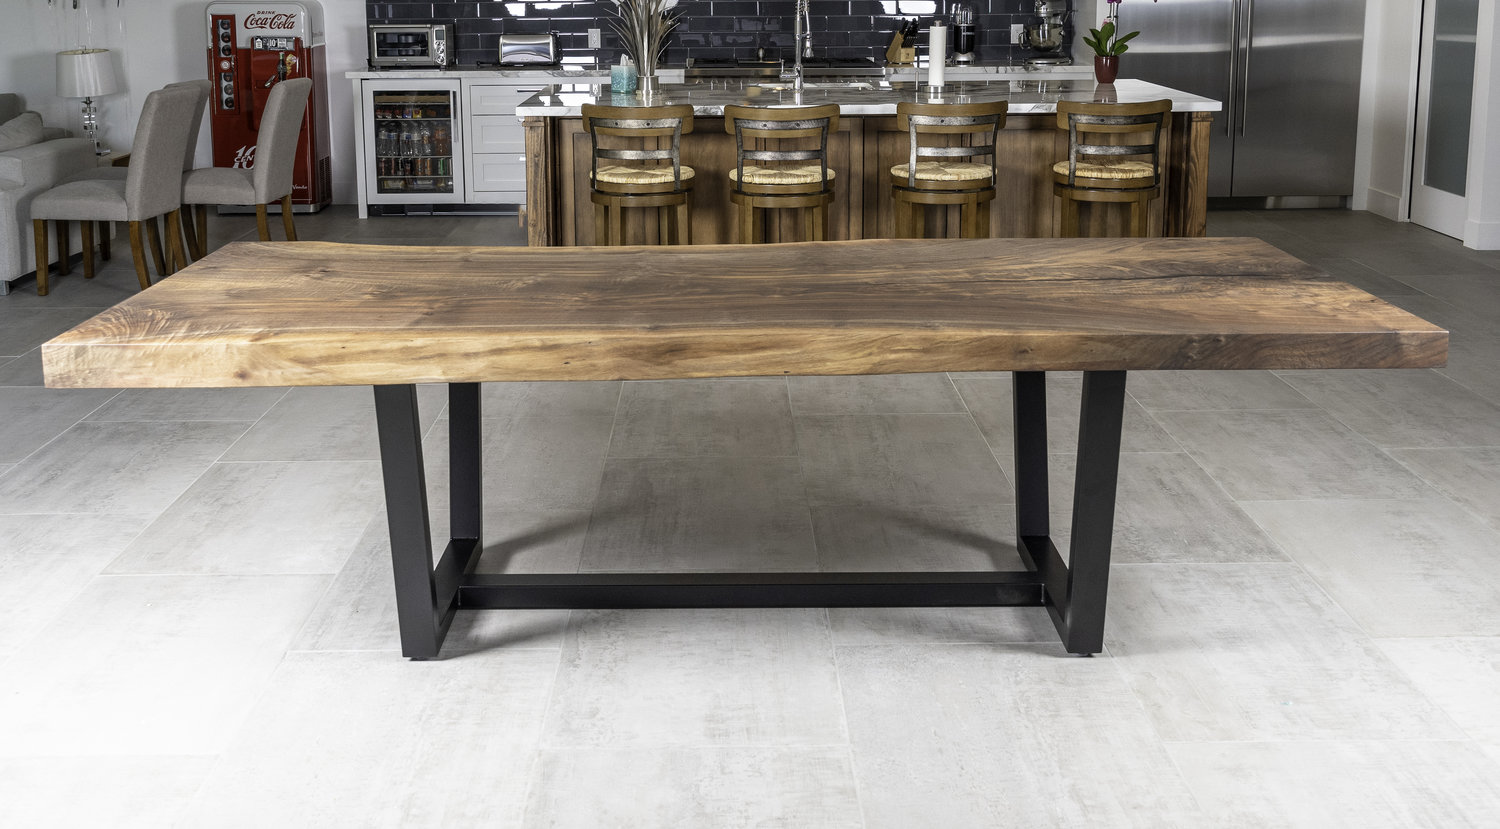 Designing your dream table starts here — Furniture Artist